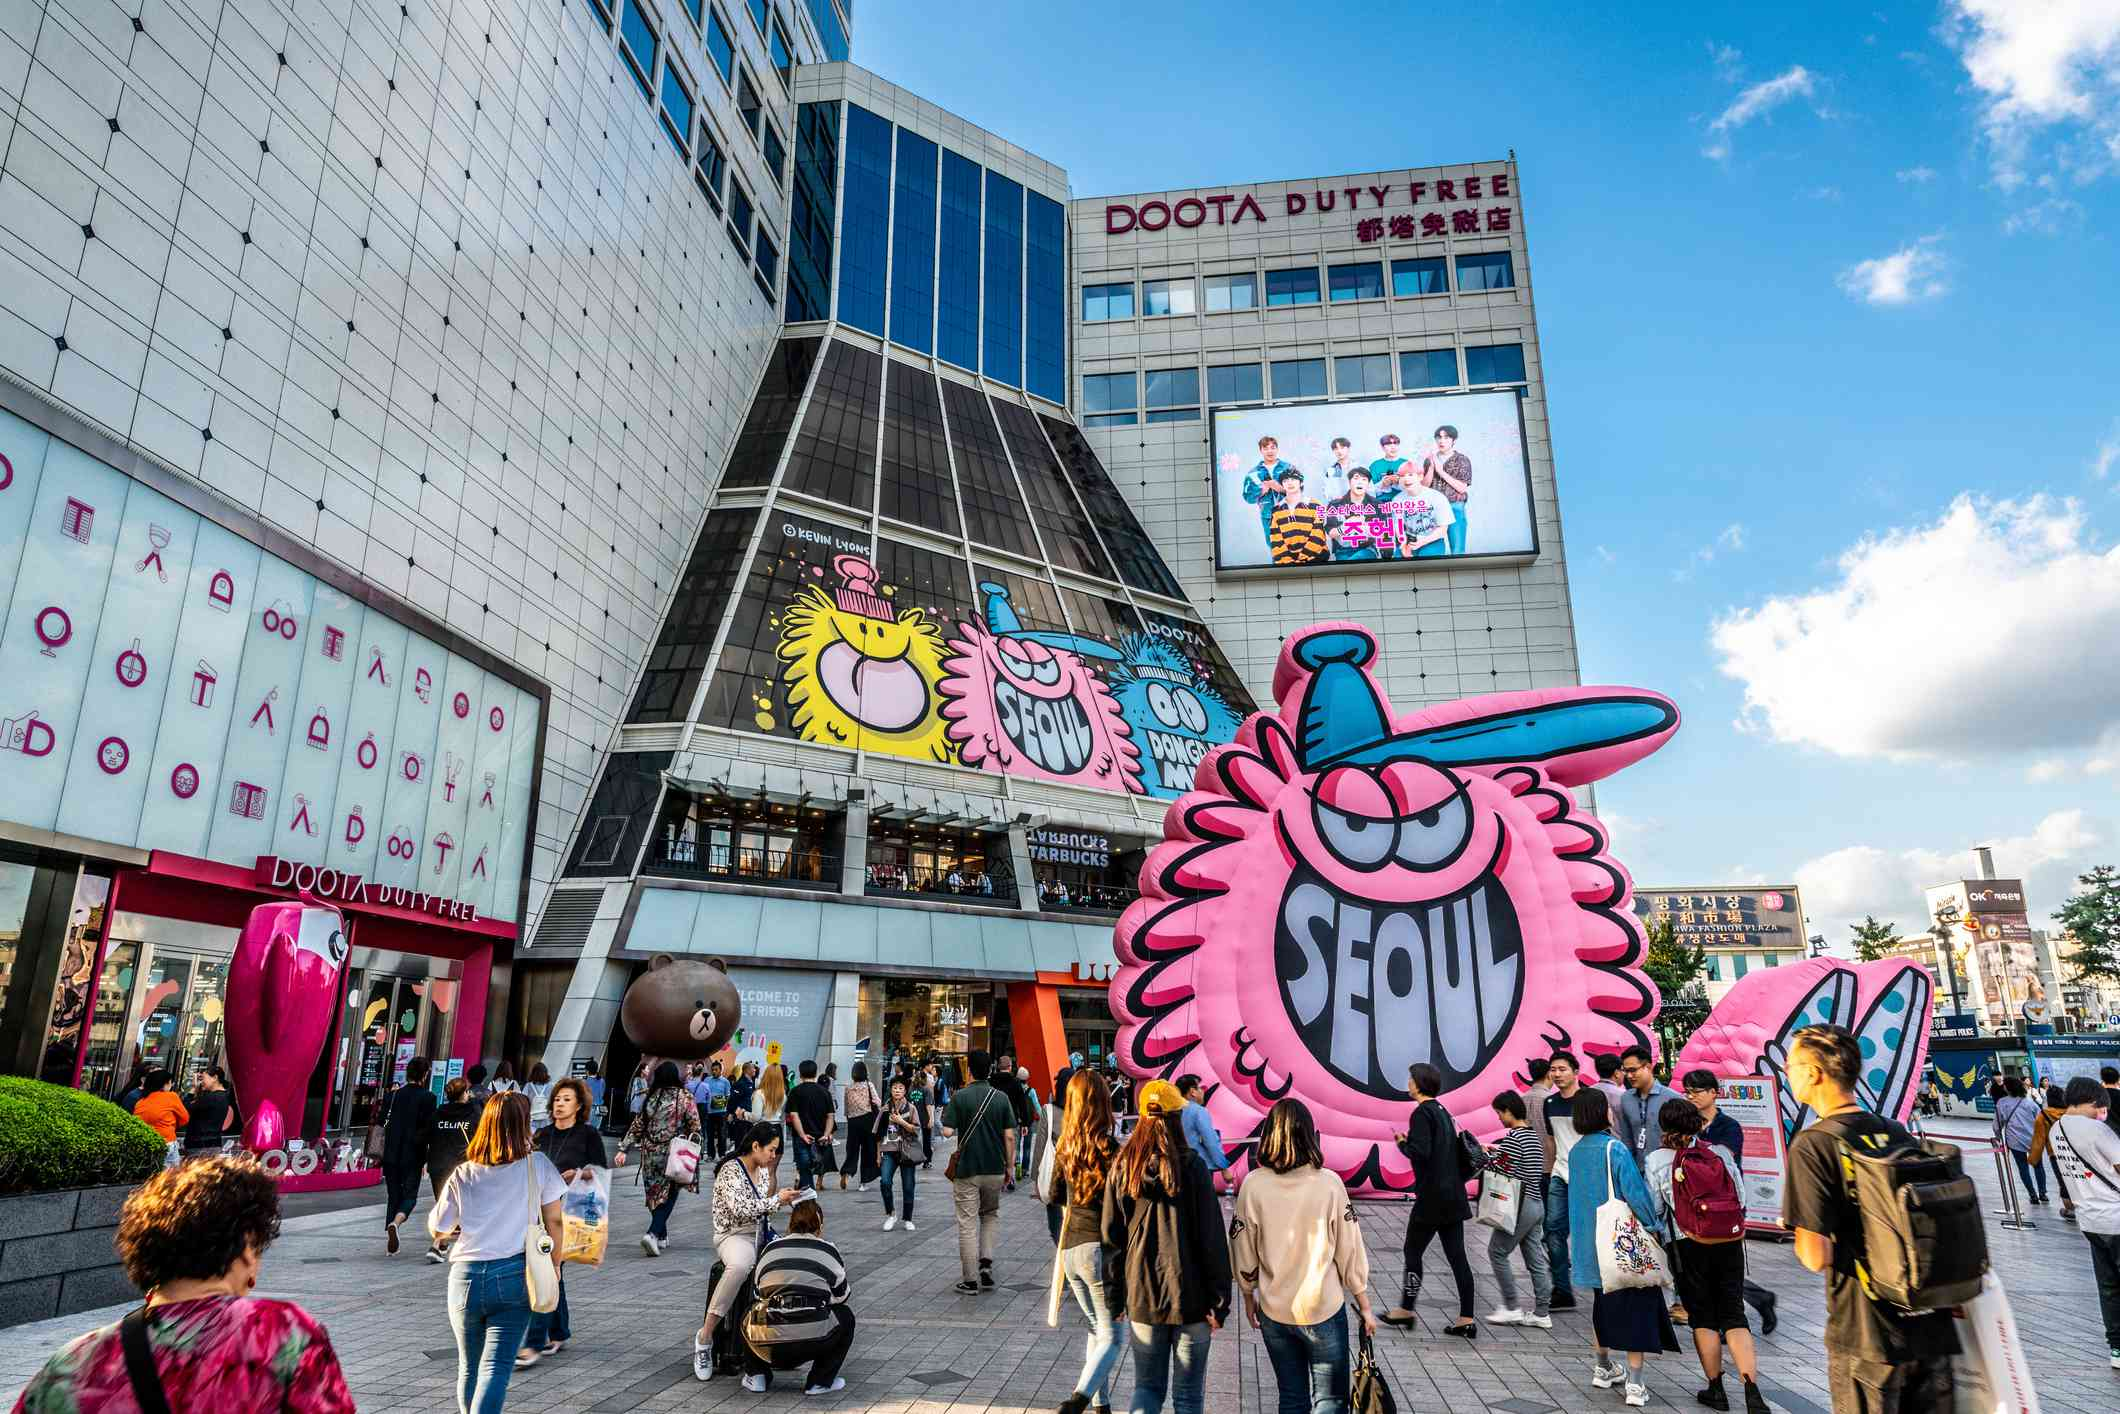 Doota shopping mall exterior view with people and Seoul city sign in Dongdaemun market Seoul South Korea